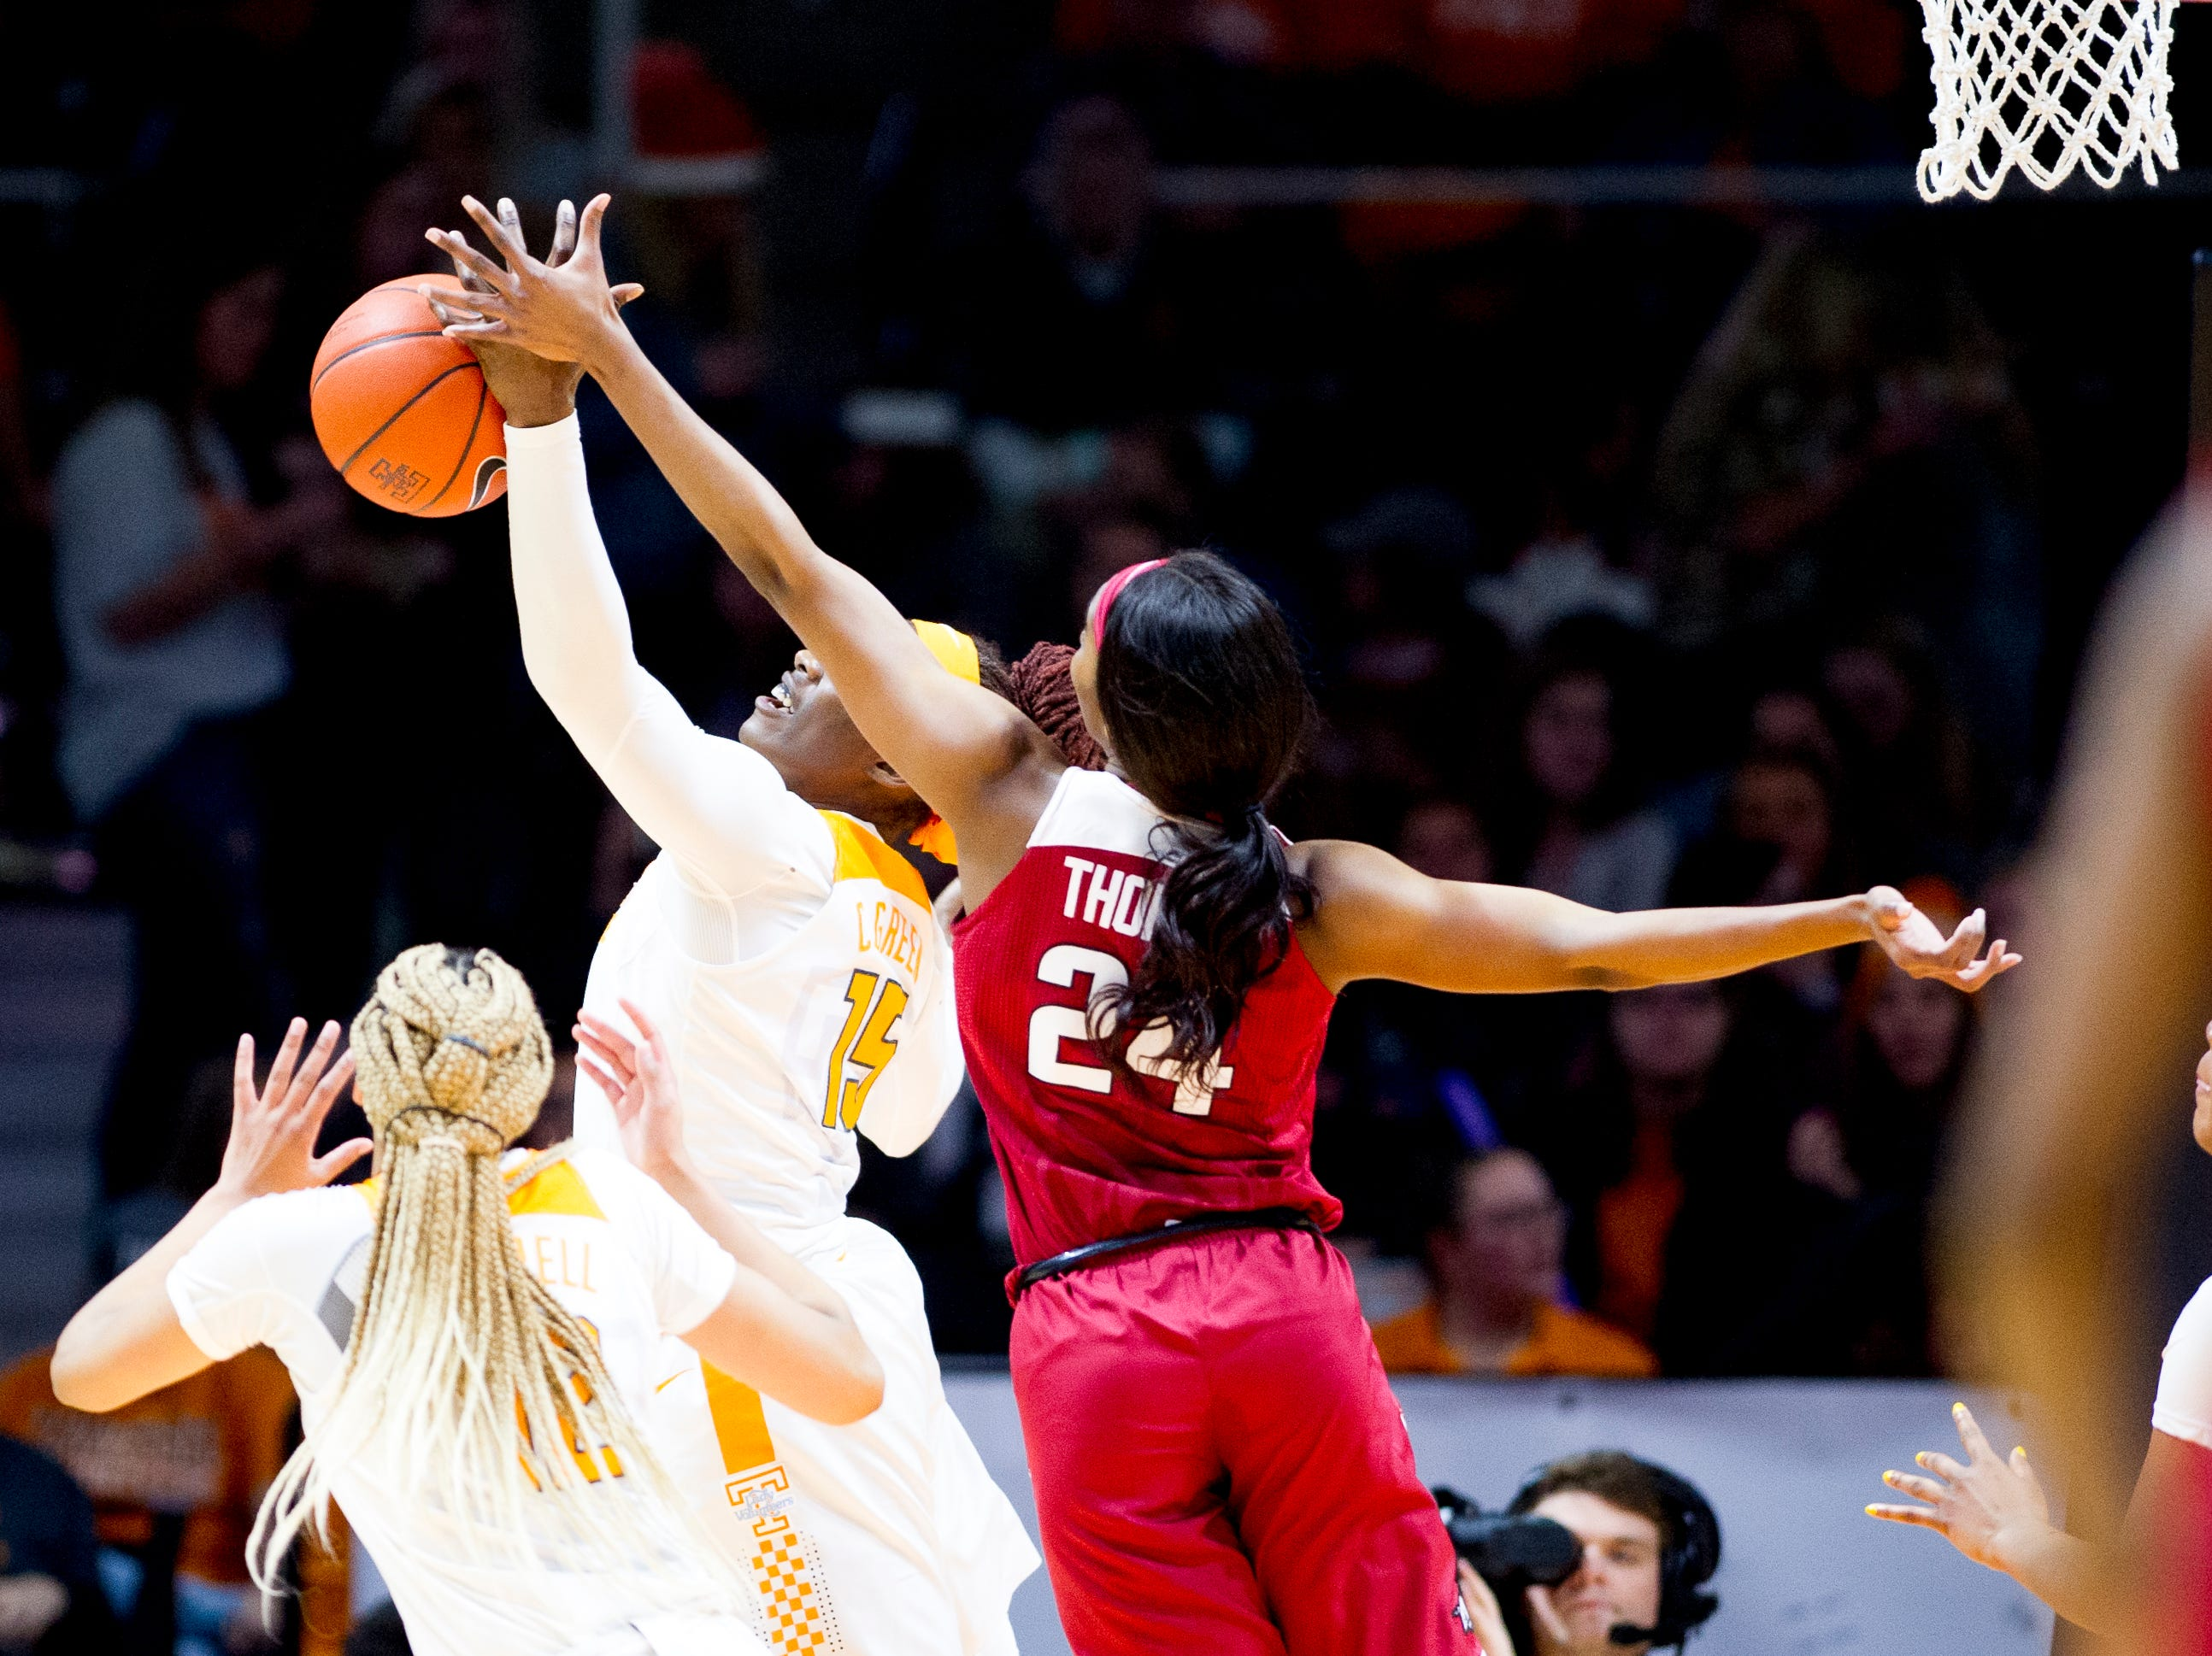 Tennessee forward Cheridene Green (15) grabs the rebound ball from Arkansas forward Taylah Thomas (24) during a game between Tennessee and Arkansas at Thompson-Boling Arena in , Tennessee on Monday, January 21, 2019.